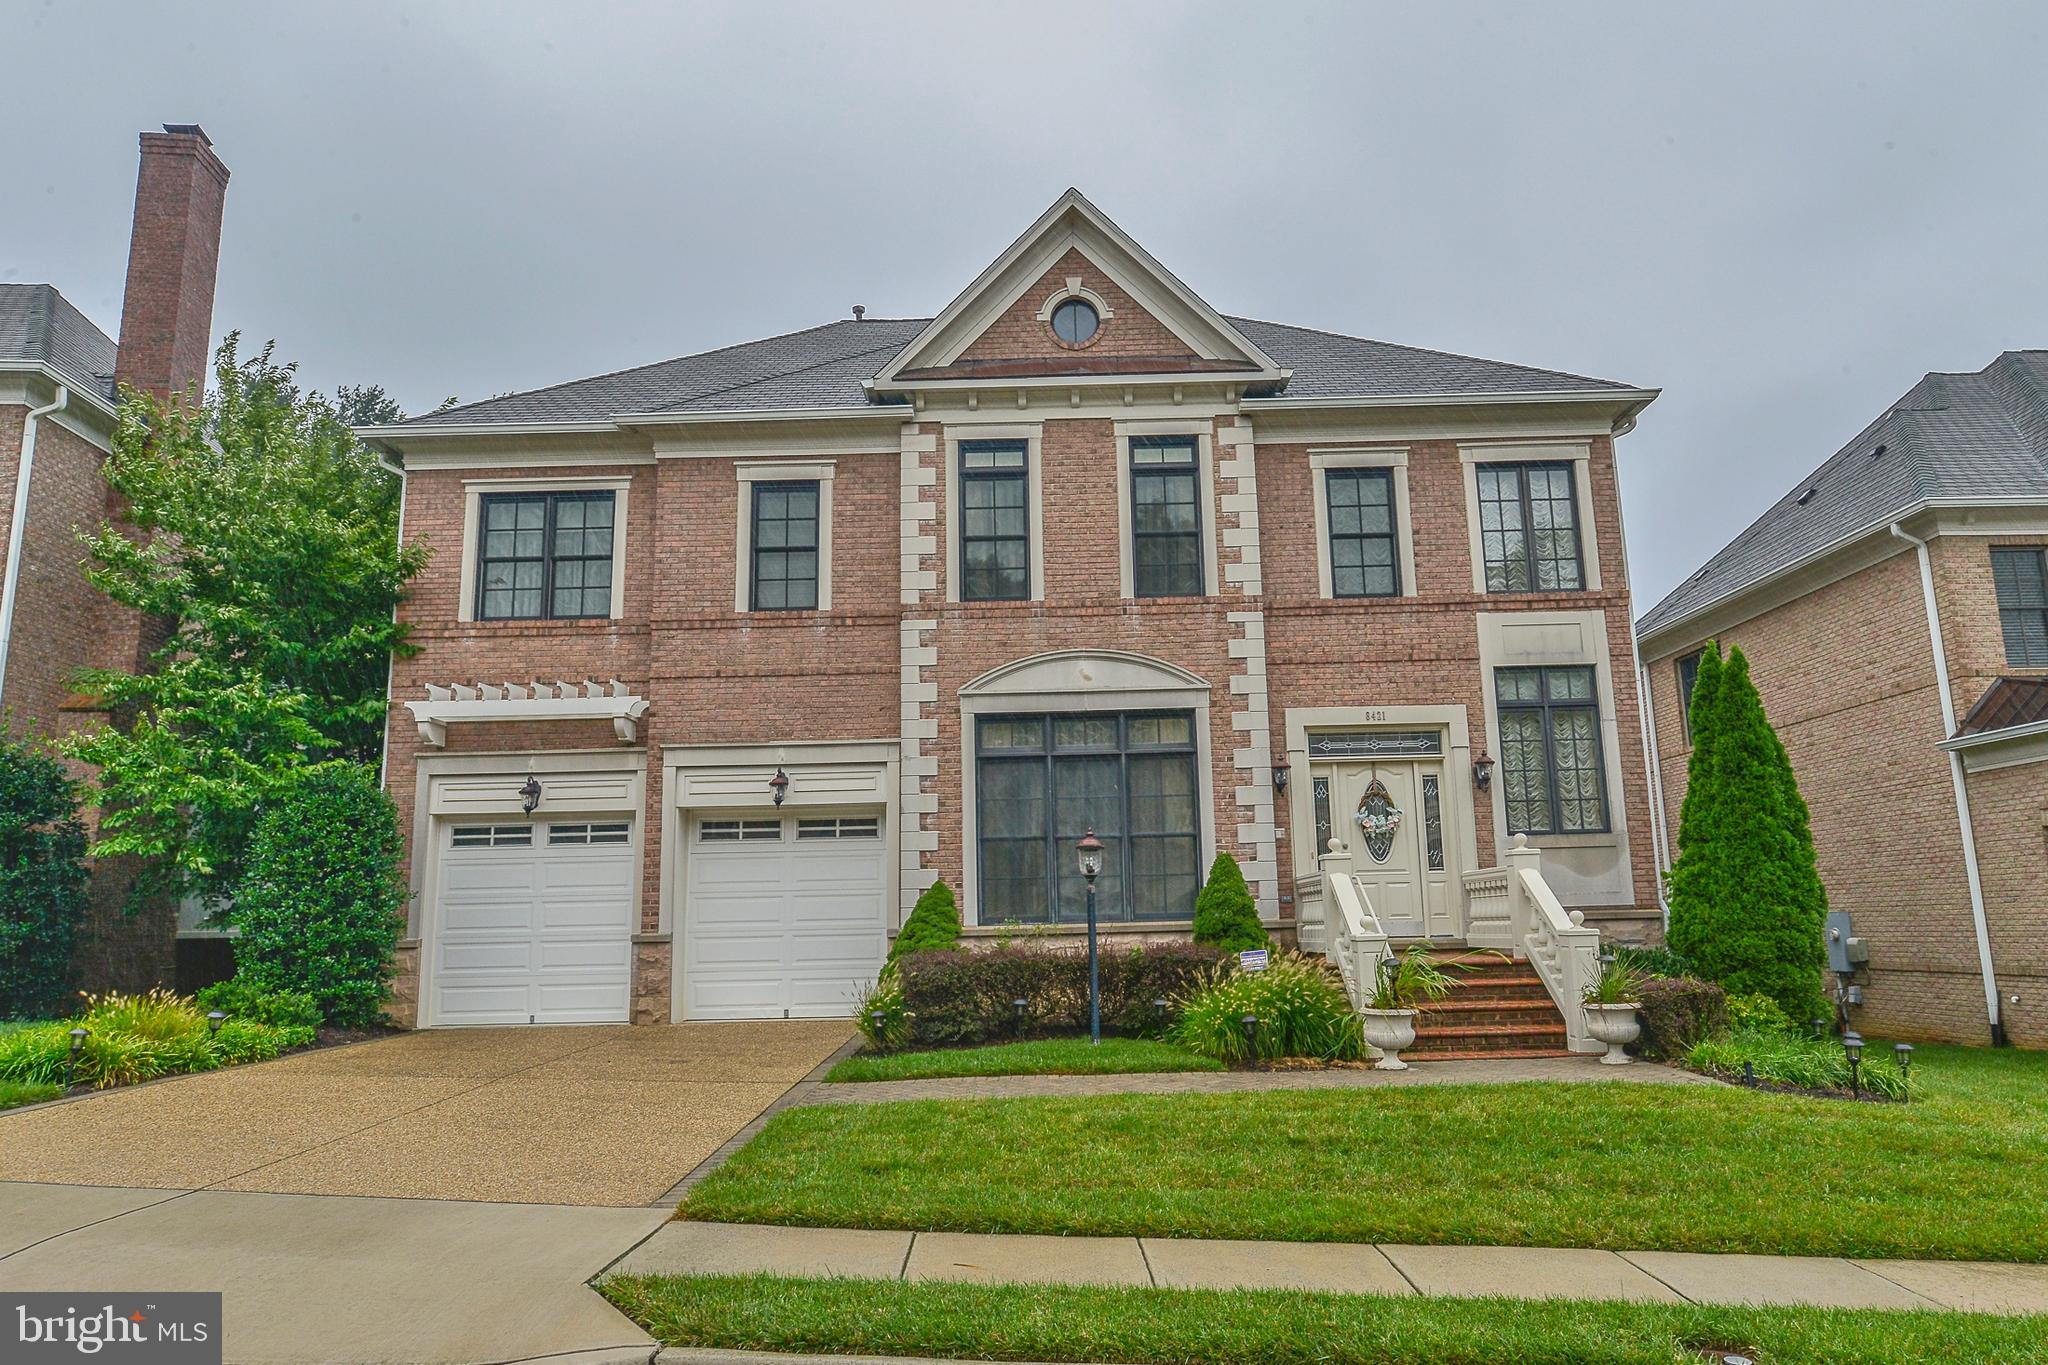 8421 FALCONE POINTE WAY, VIENNA, VA 22182